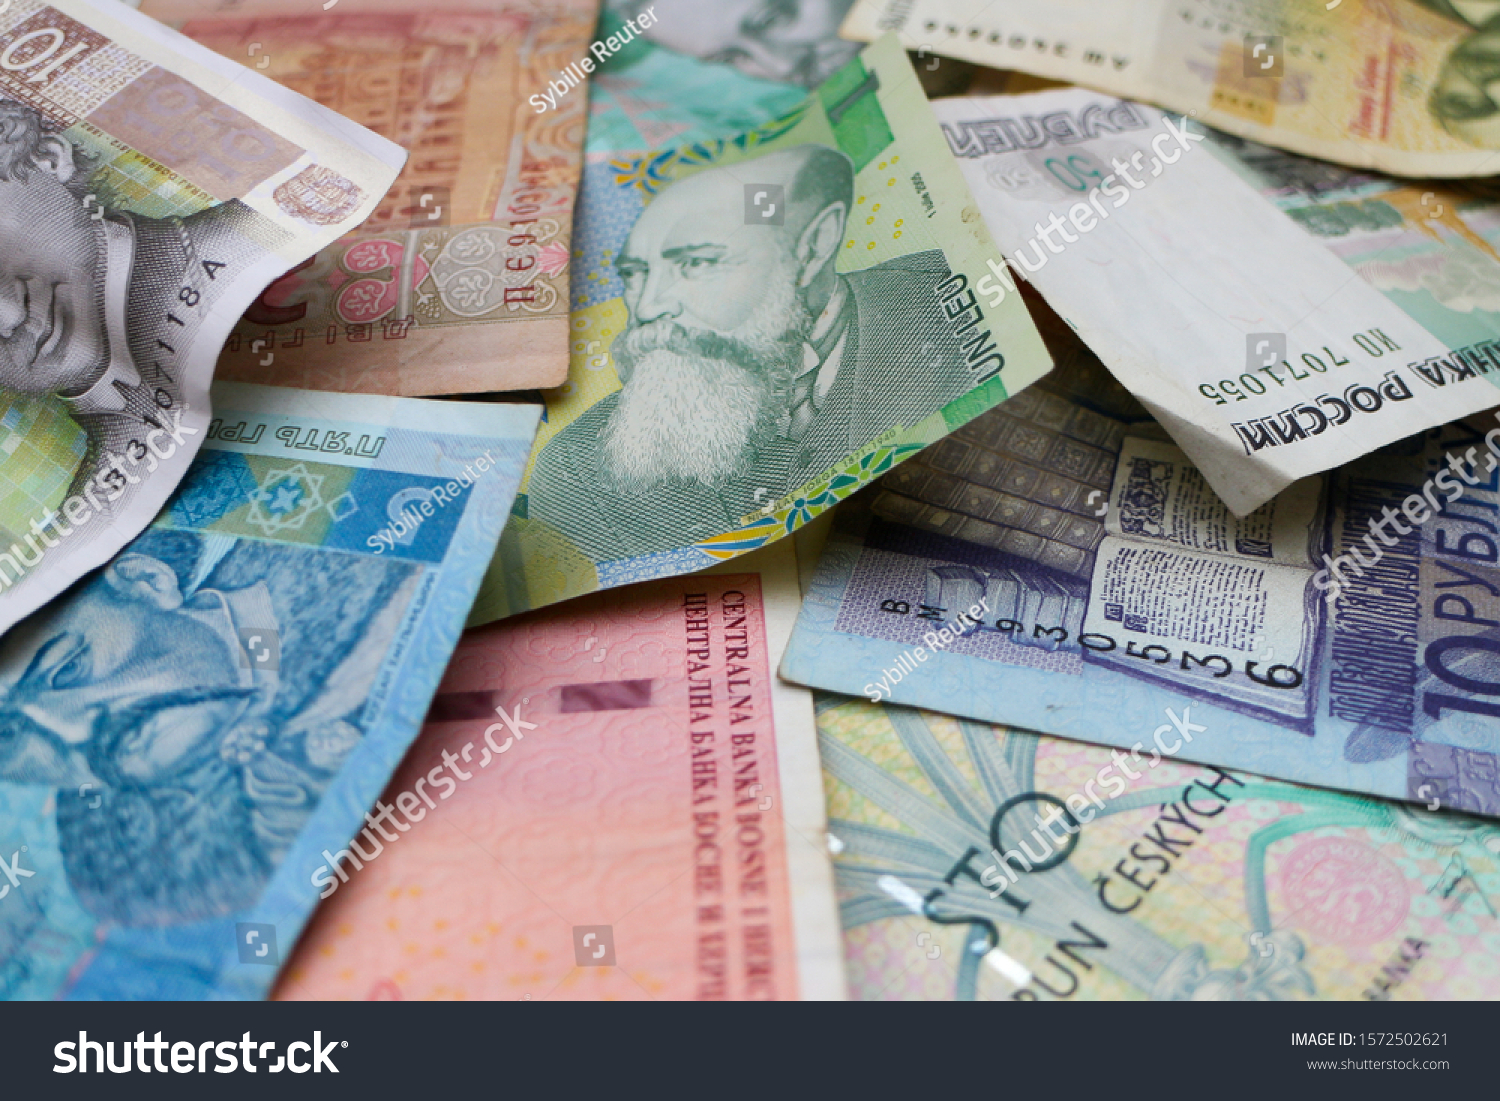 stock-photo-pile-of-banknotes-of-eastern